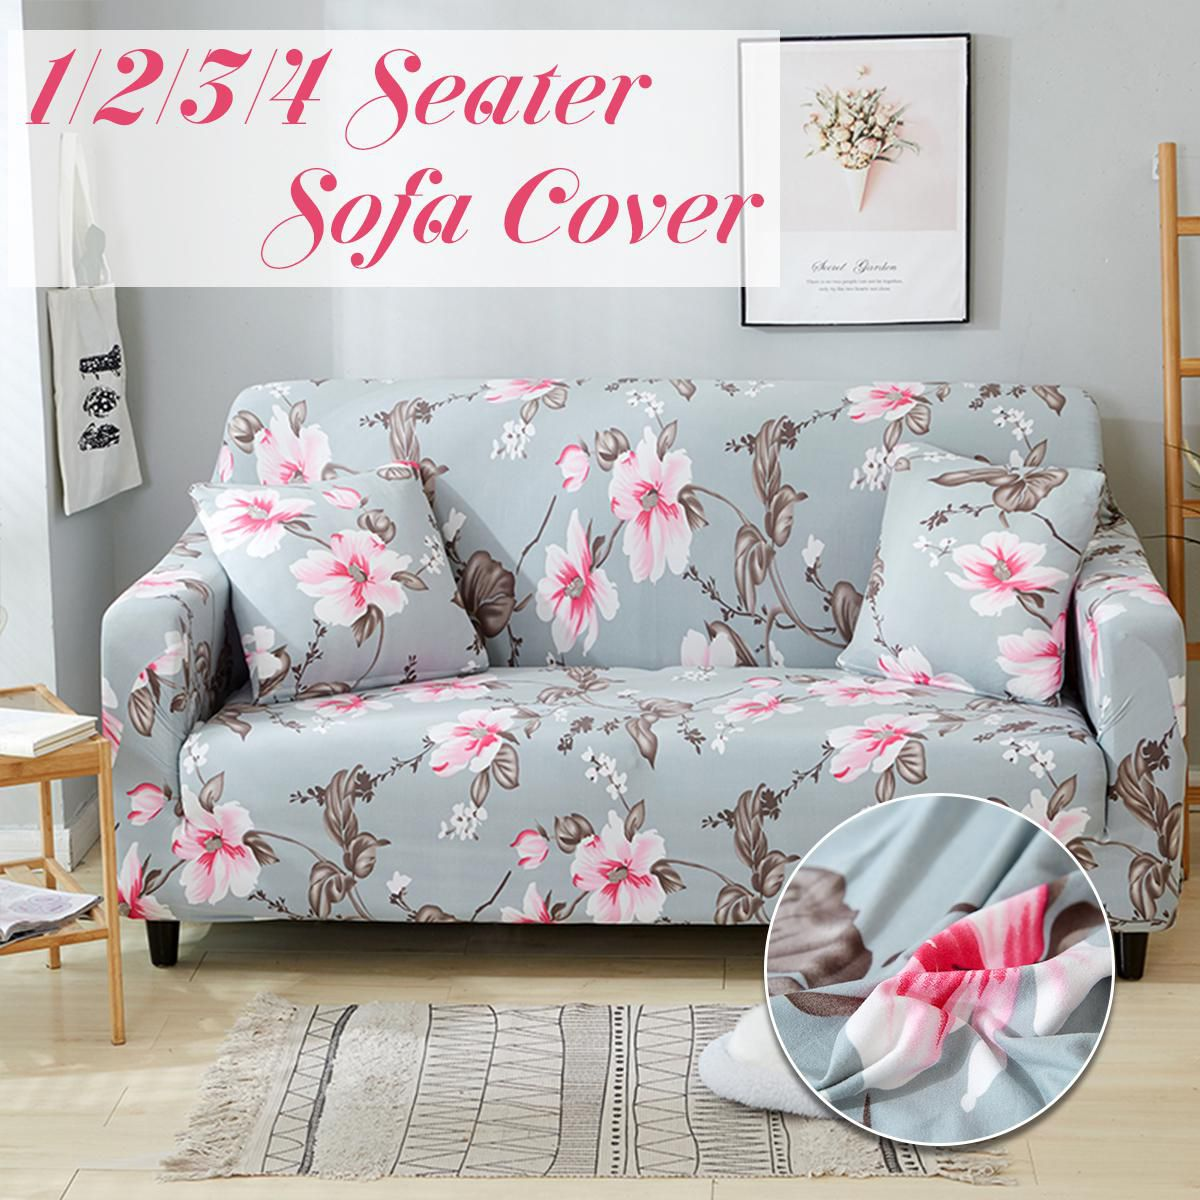 Pleasant 1 2 3 4 Seater Sofa Cover Chair Couch Stretch Elastic Andrewgaddart Wooden Chair Designs For Living Room Andrewgaddartcom